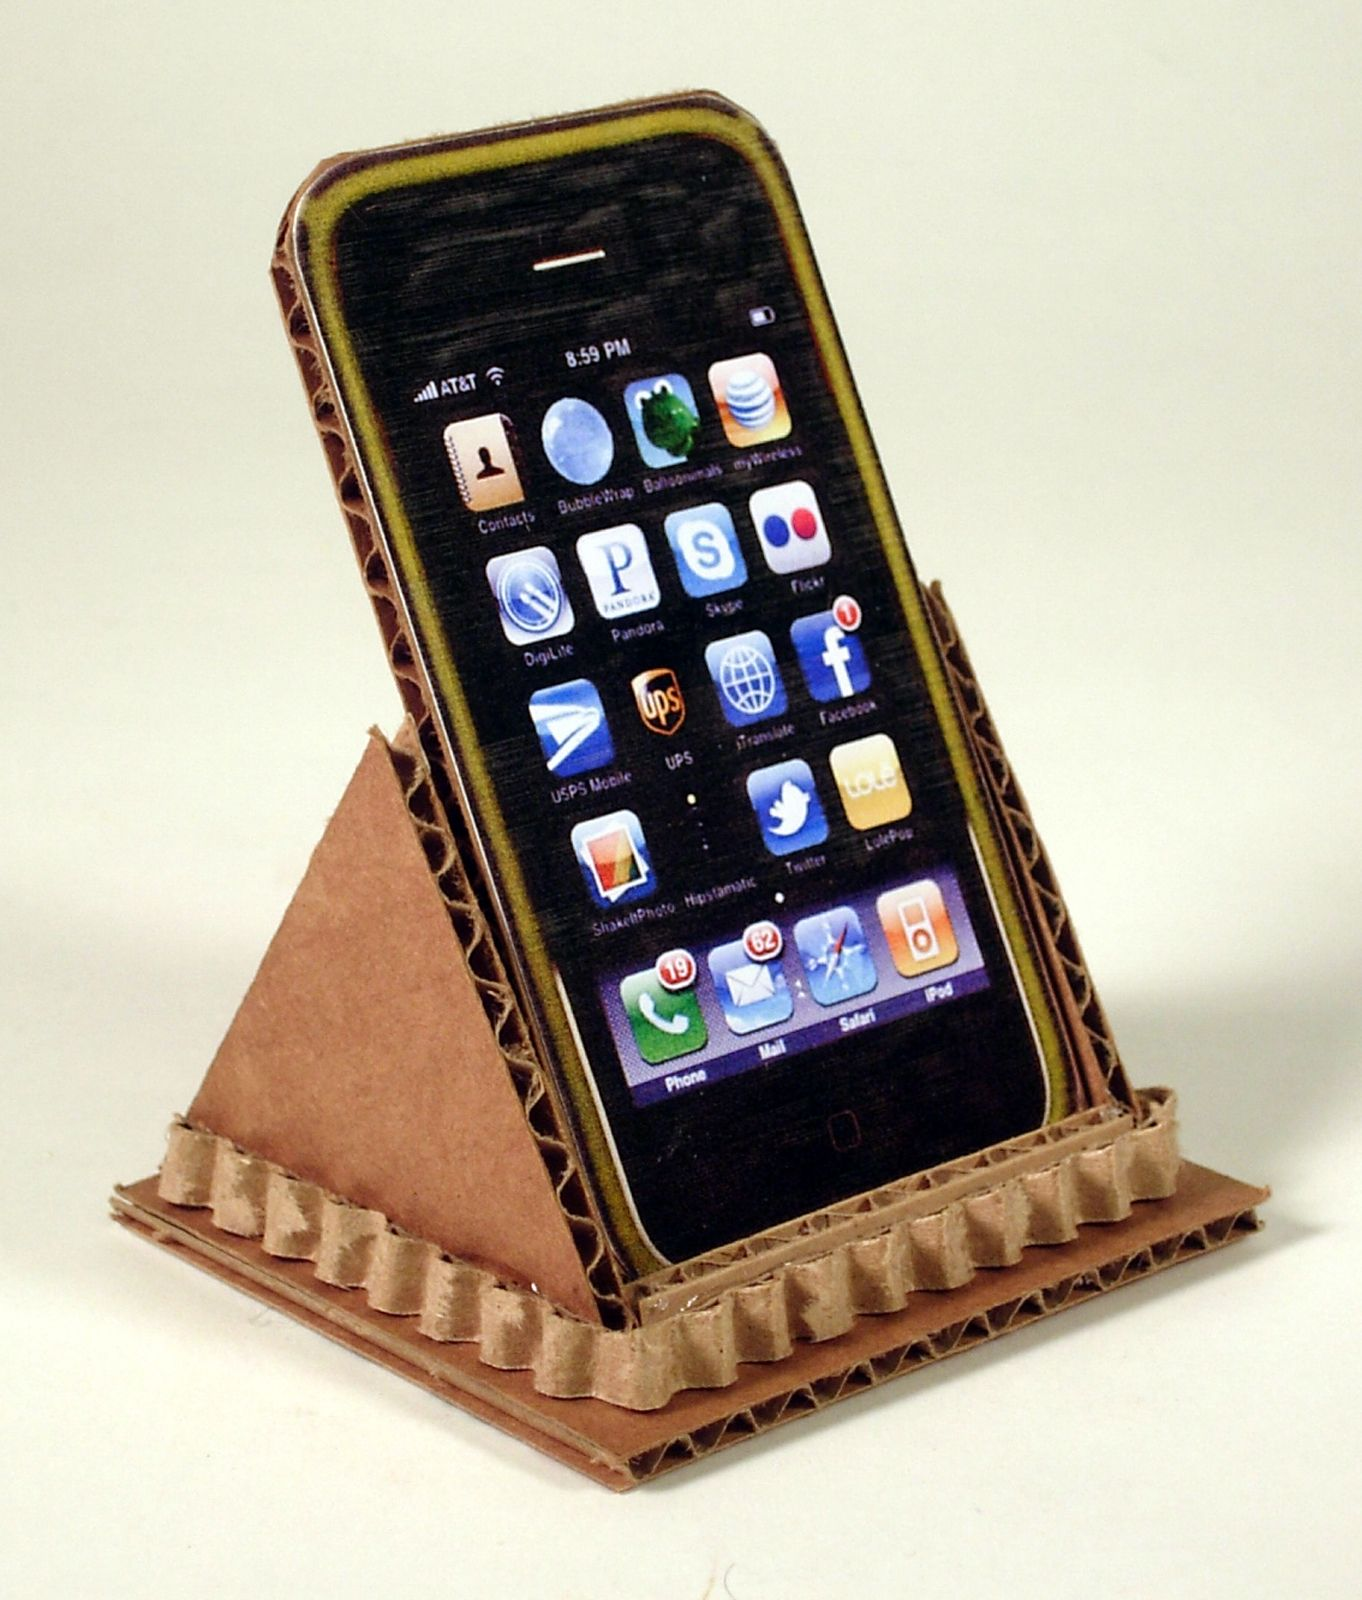 hutch studio: A Cardboard iphone stand | DIY and Crafts | Pinterest